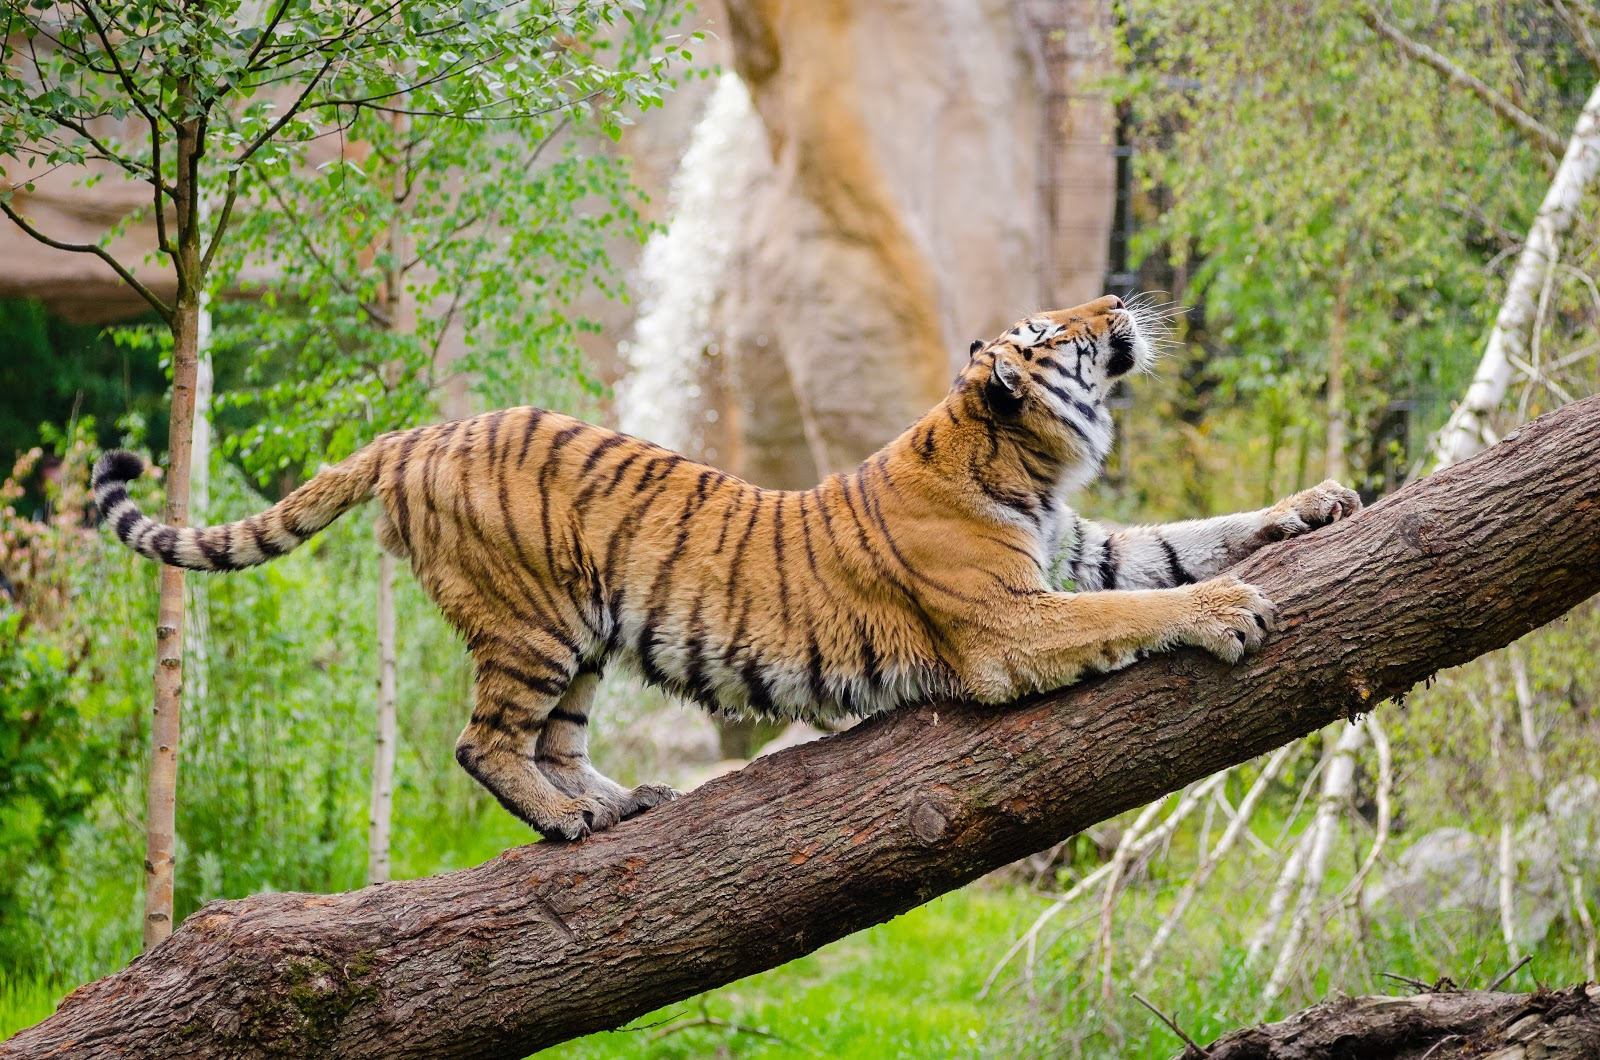 tiger-stretching-over-brown-trunk-during-daytime-pictures